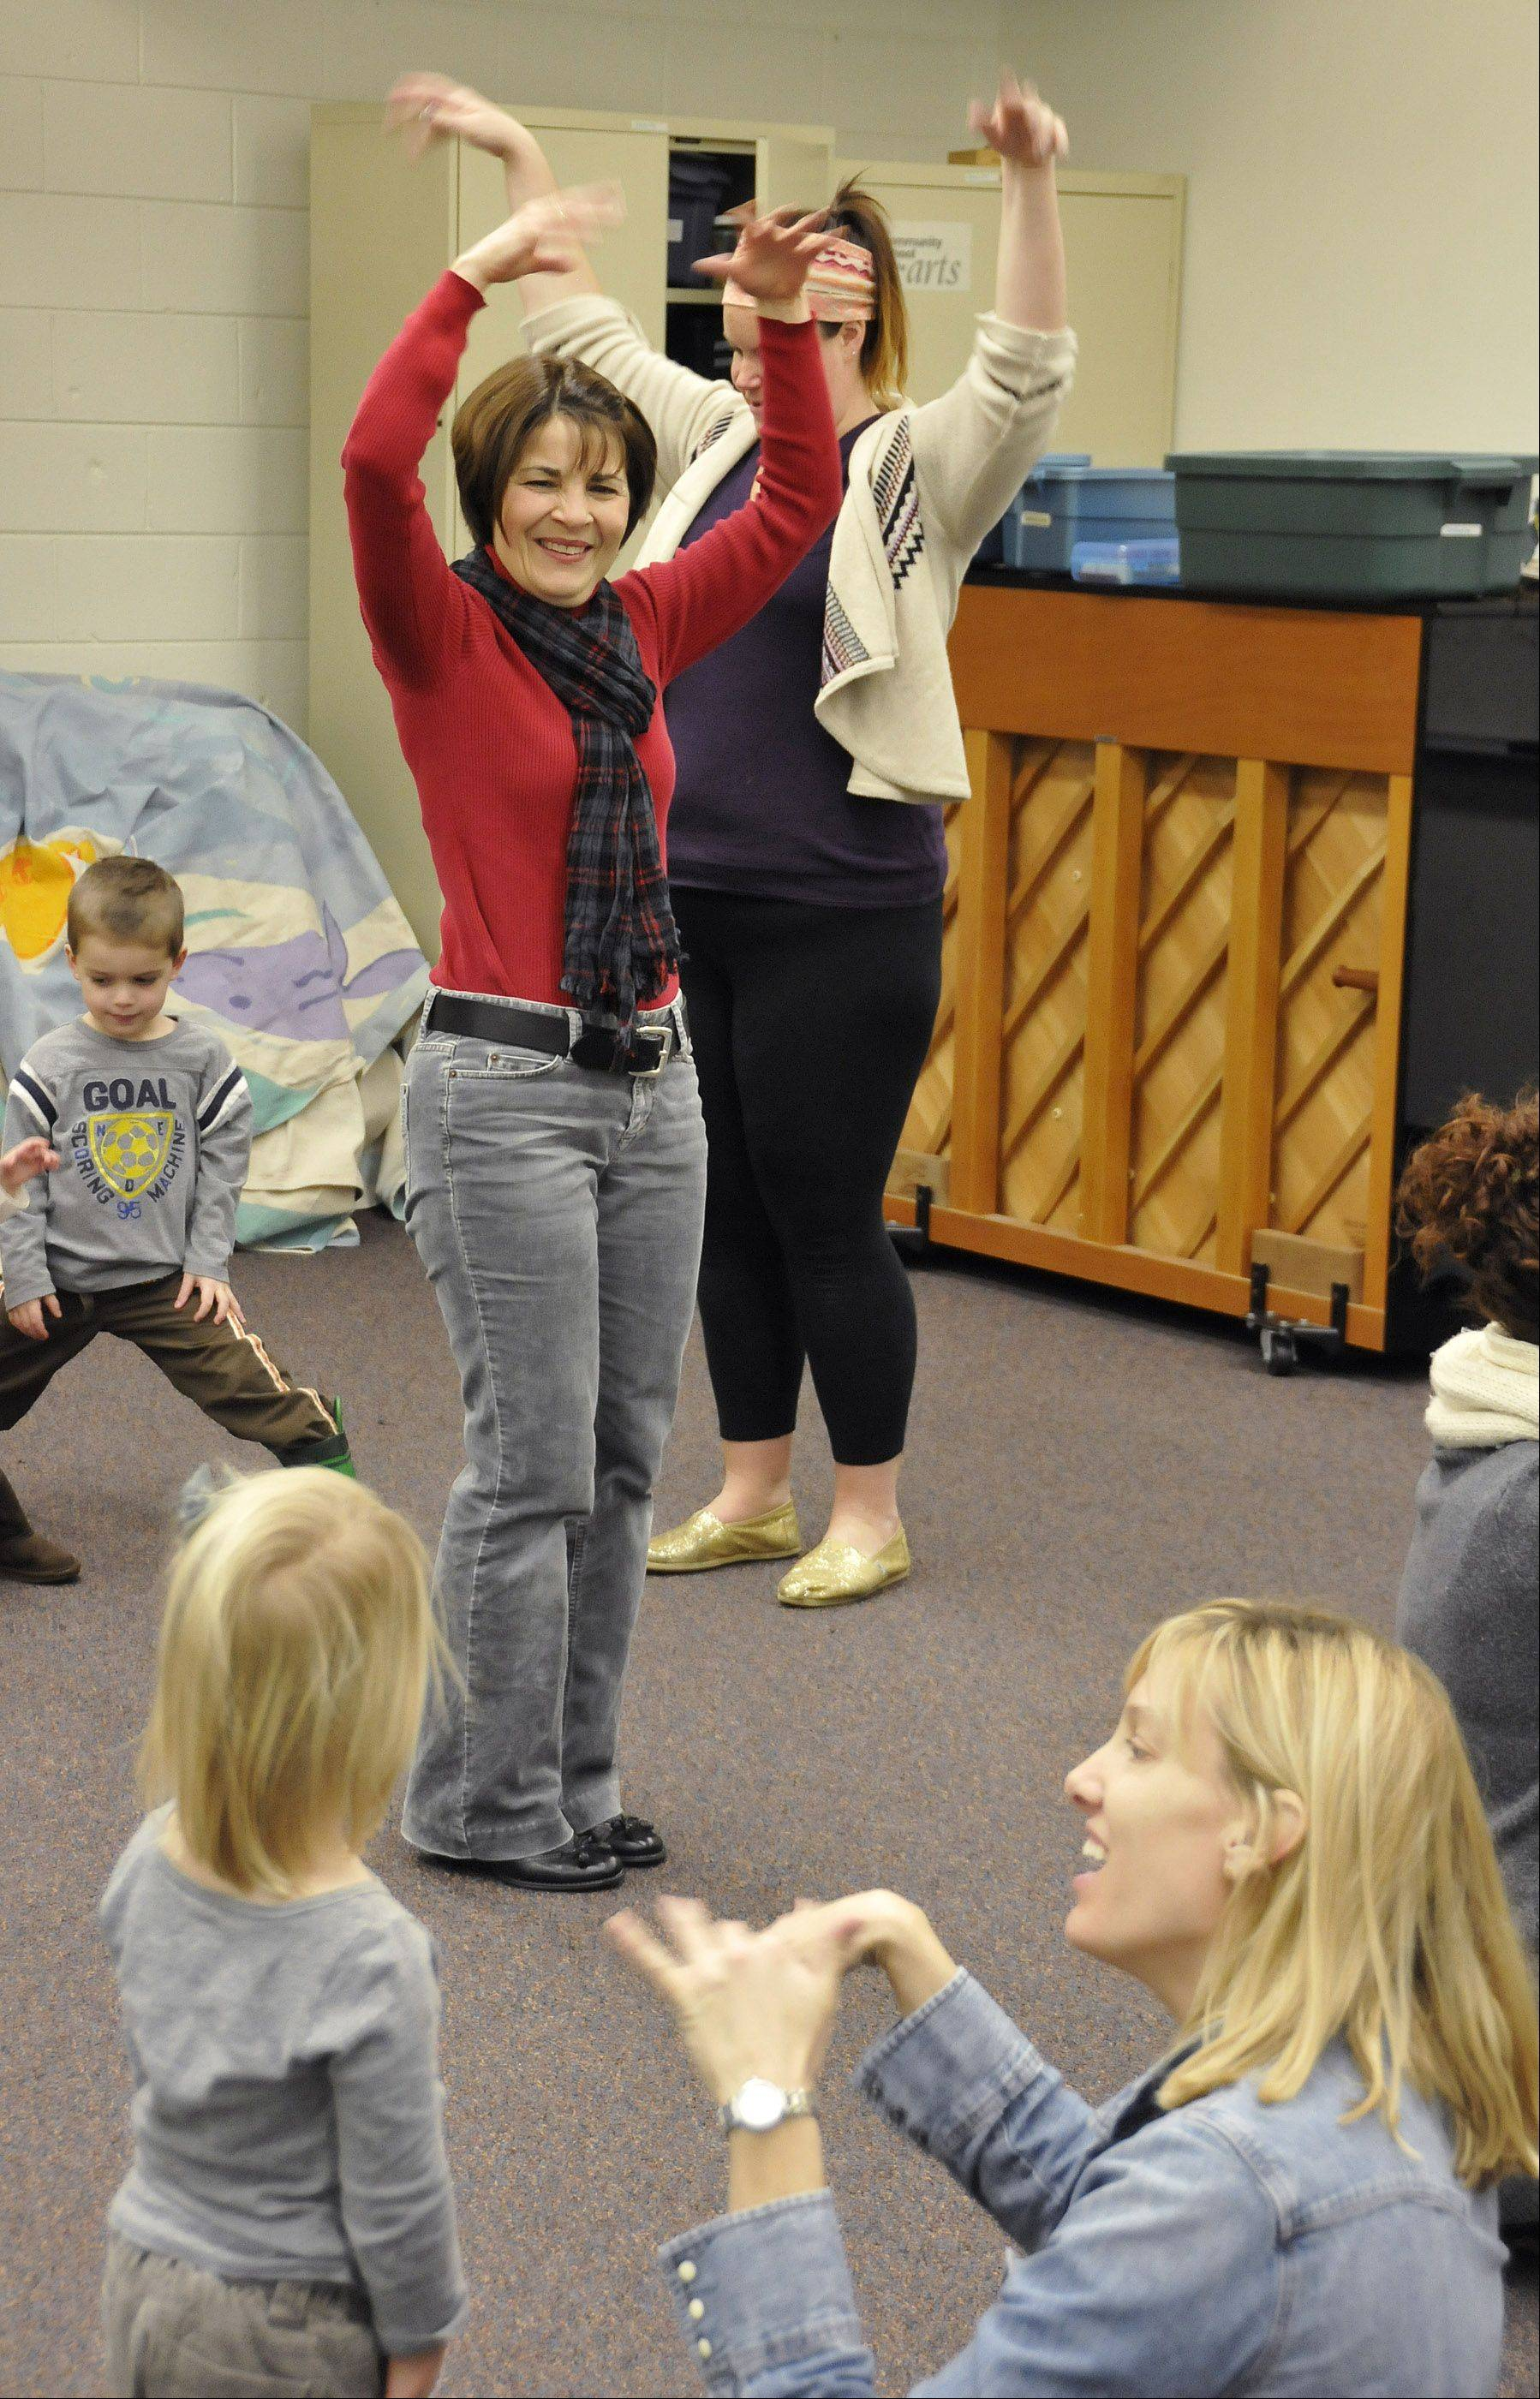 Ann Storm, in red sweater, teaches music to young children at Wheaton College's Community School of the Arts.